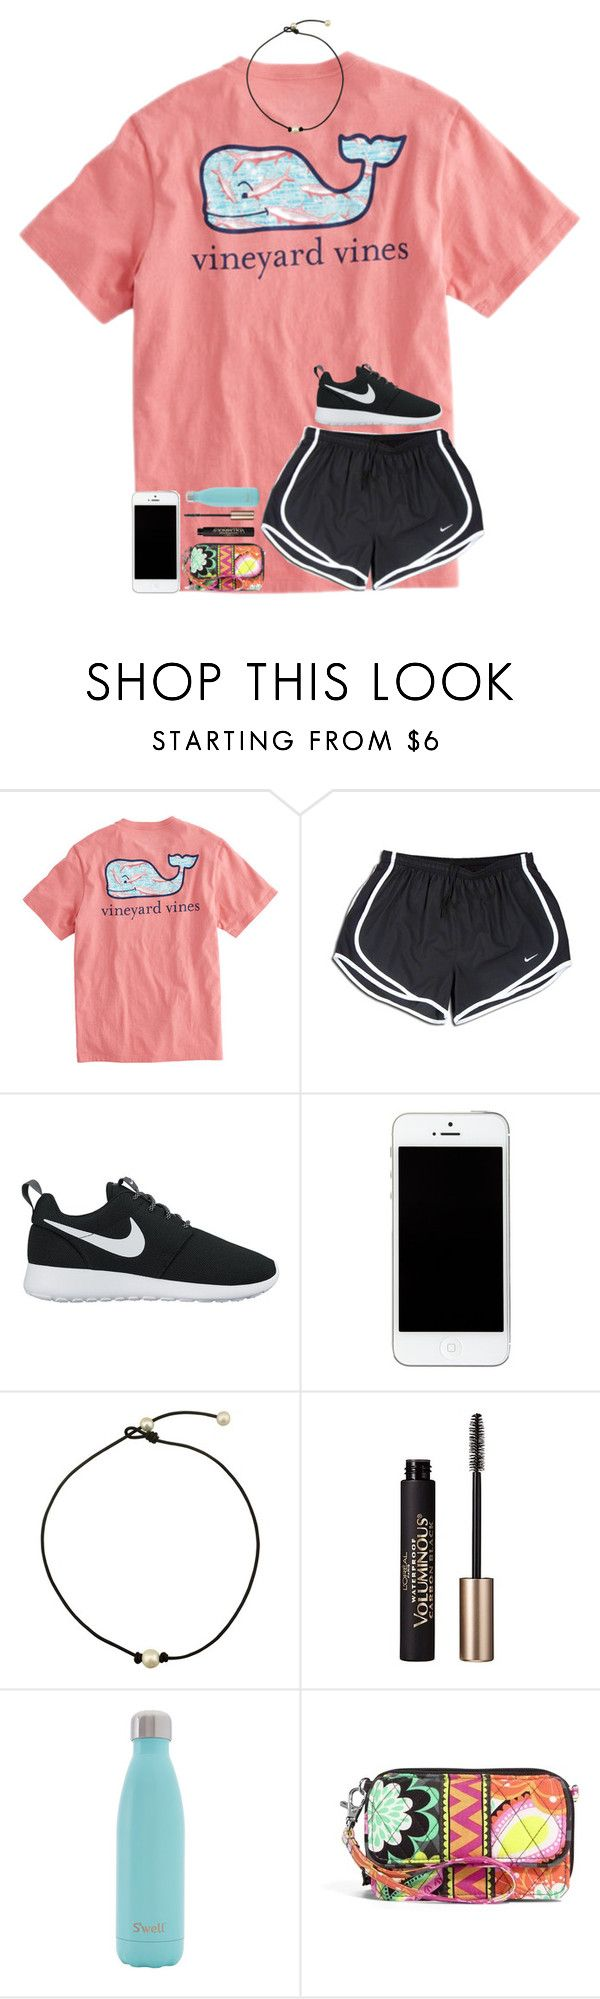 """Cheer camp tomorrow!"" by kyliegrace ❤ liked on Polyvore featuring beauty, Vineyard Vines, NIKE, L'Oréal Paris, S'well and Vera Bradley"